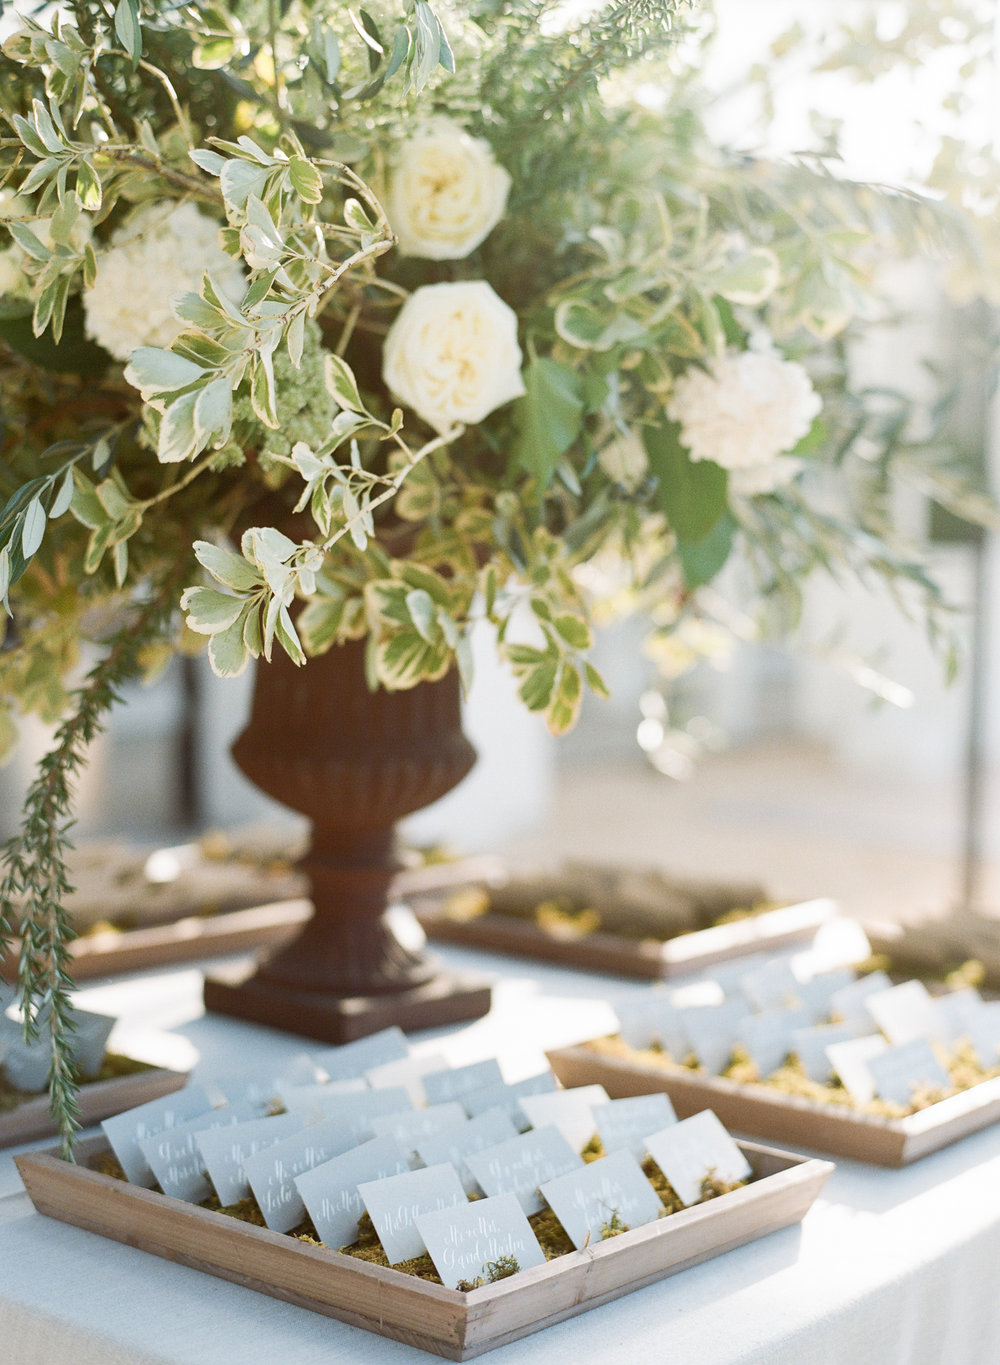 Olive branch floral arrangement at a table holding place cards; Sylvie Gil Photography